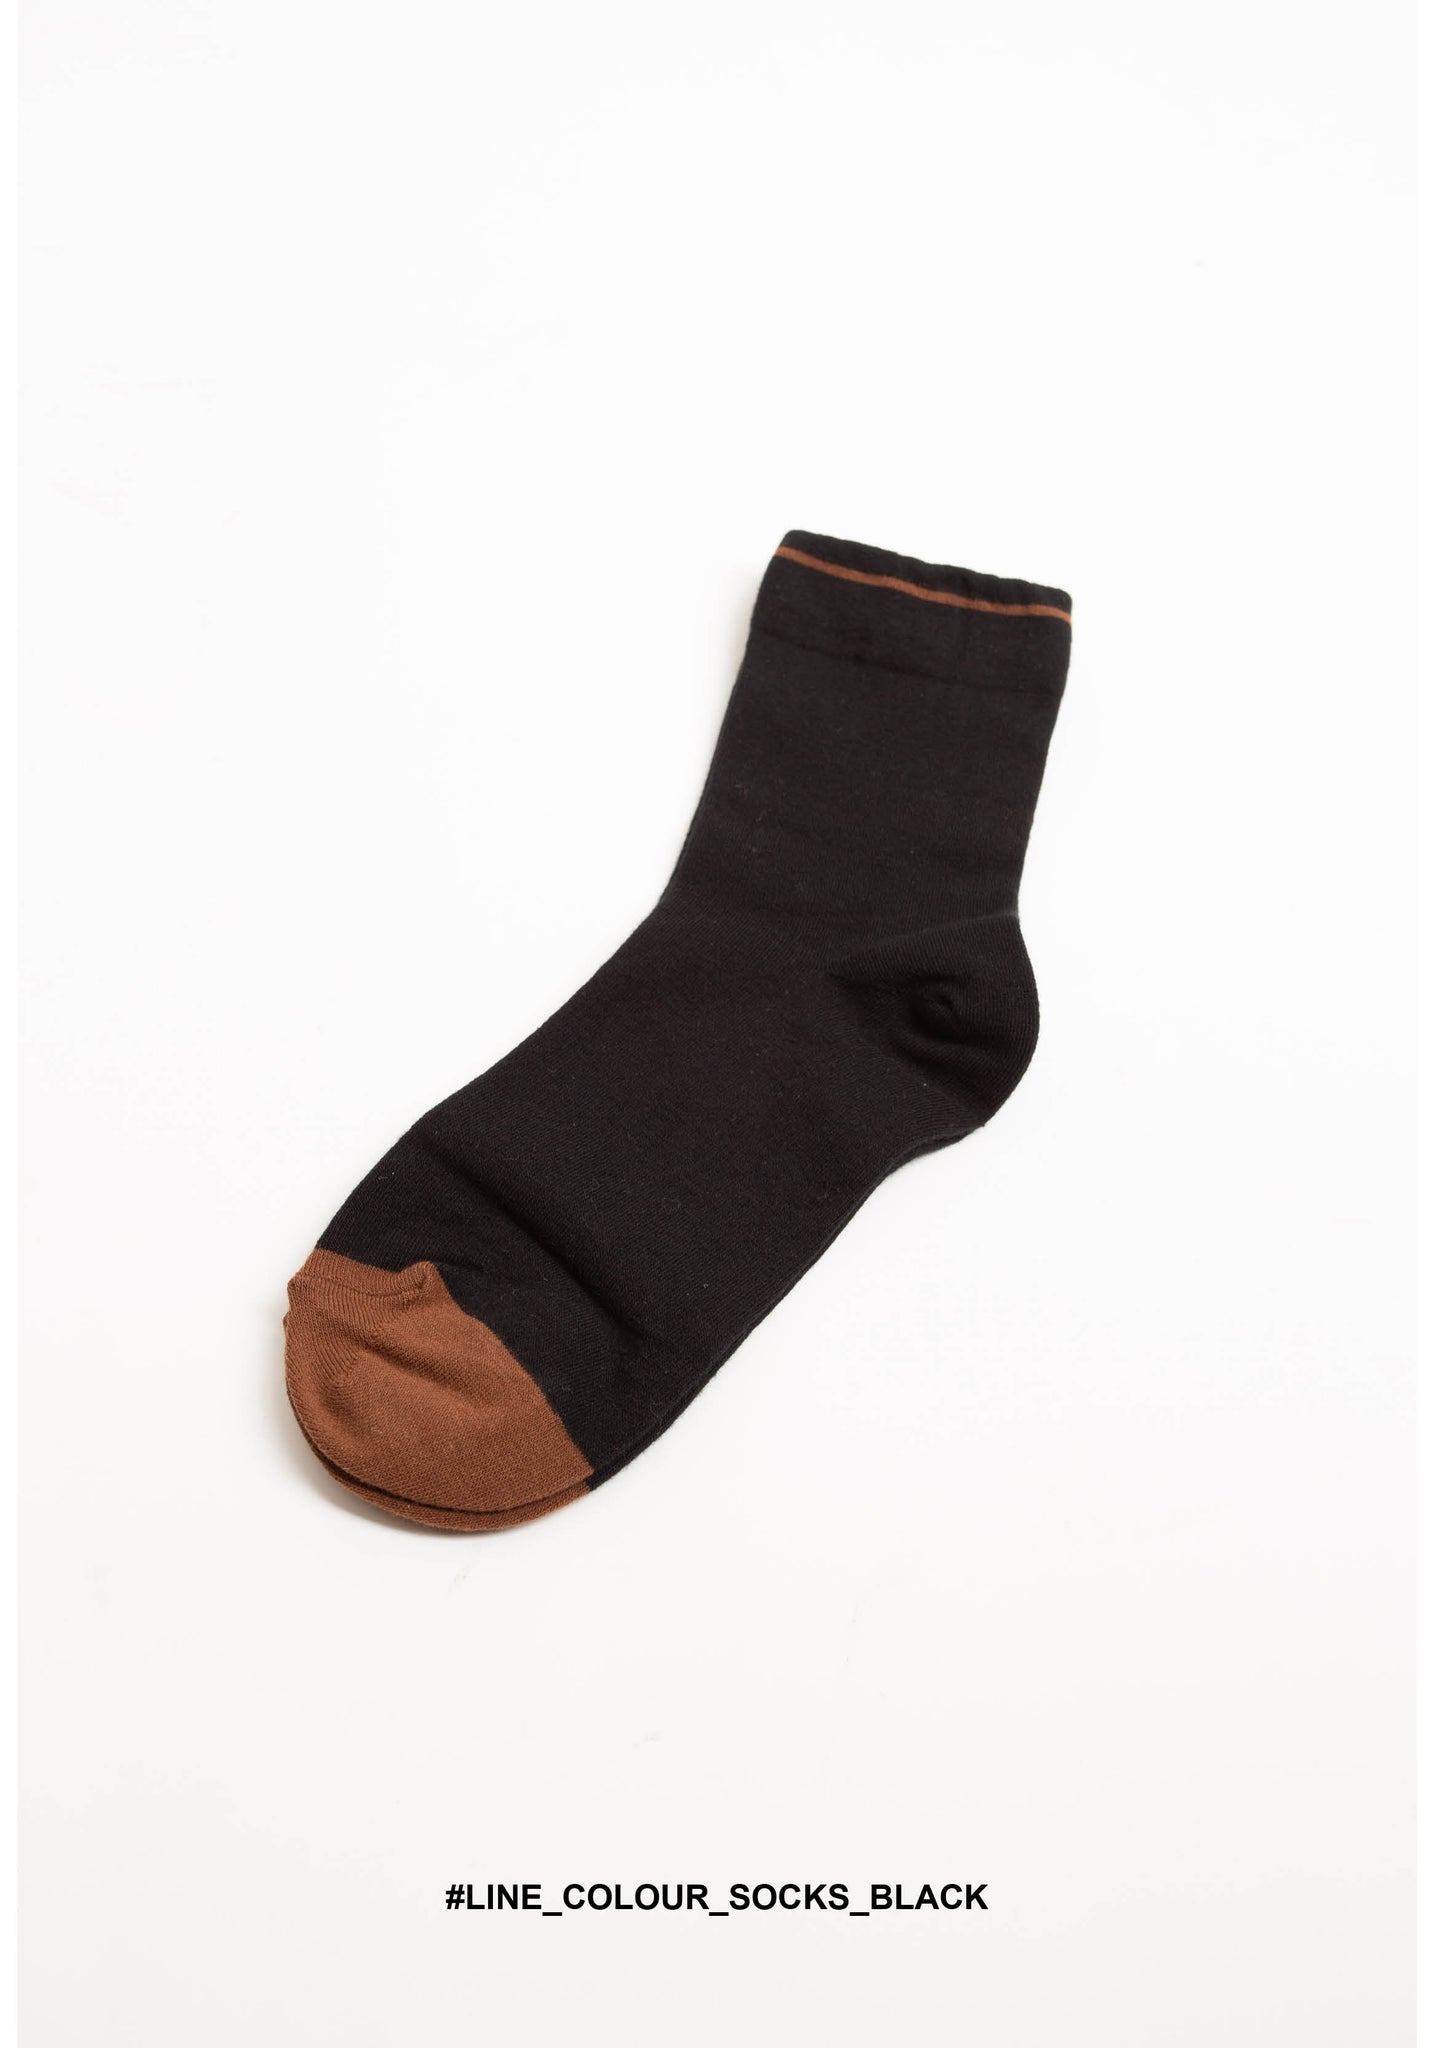 Line Colour Socks Black - whoami